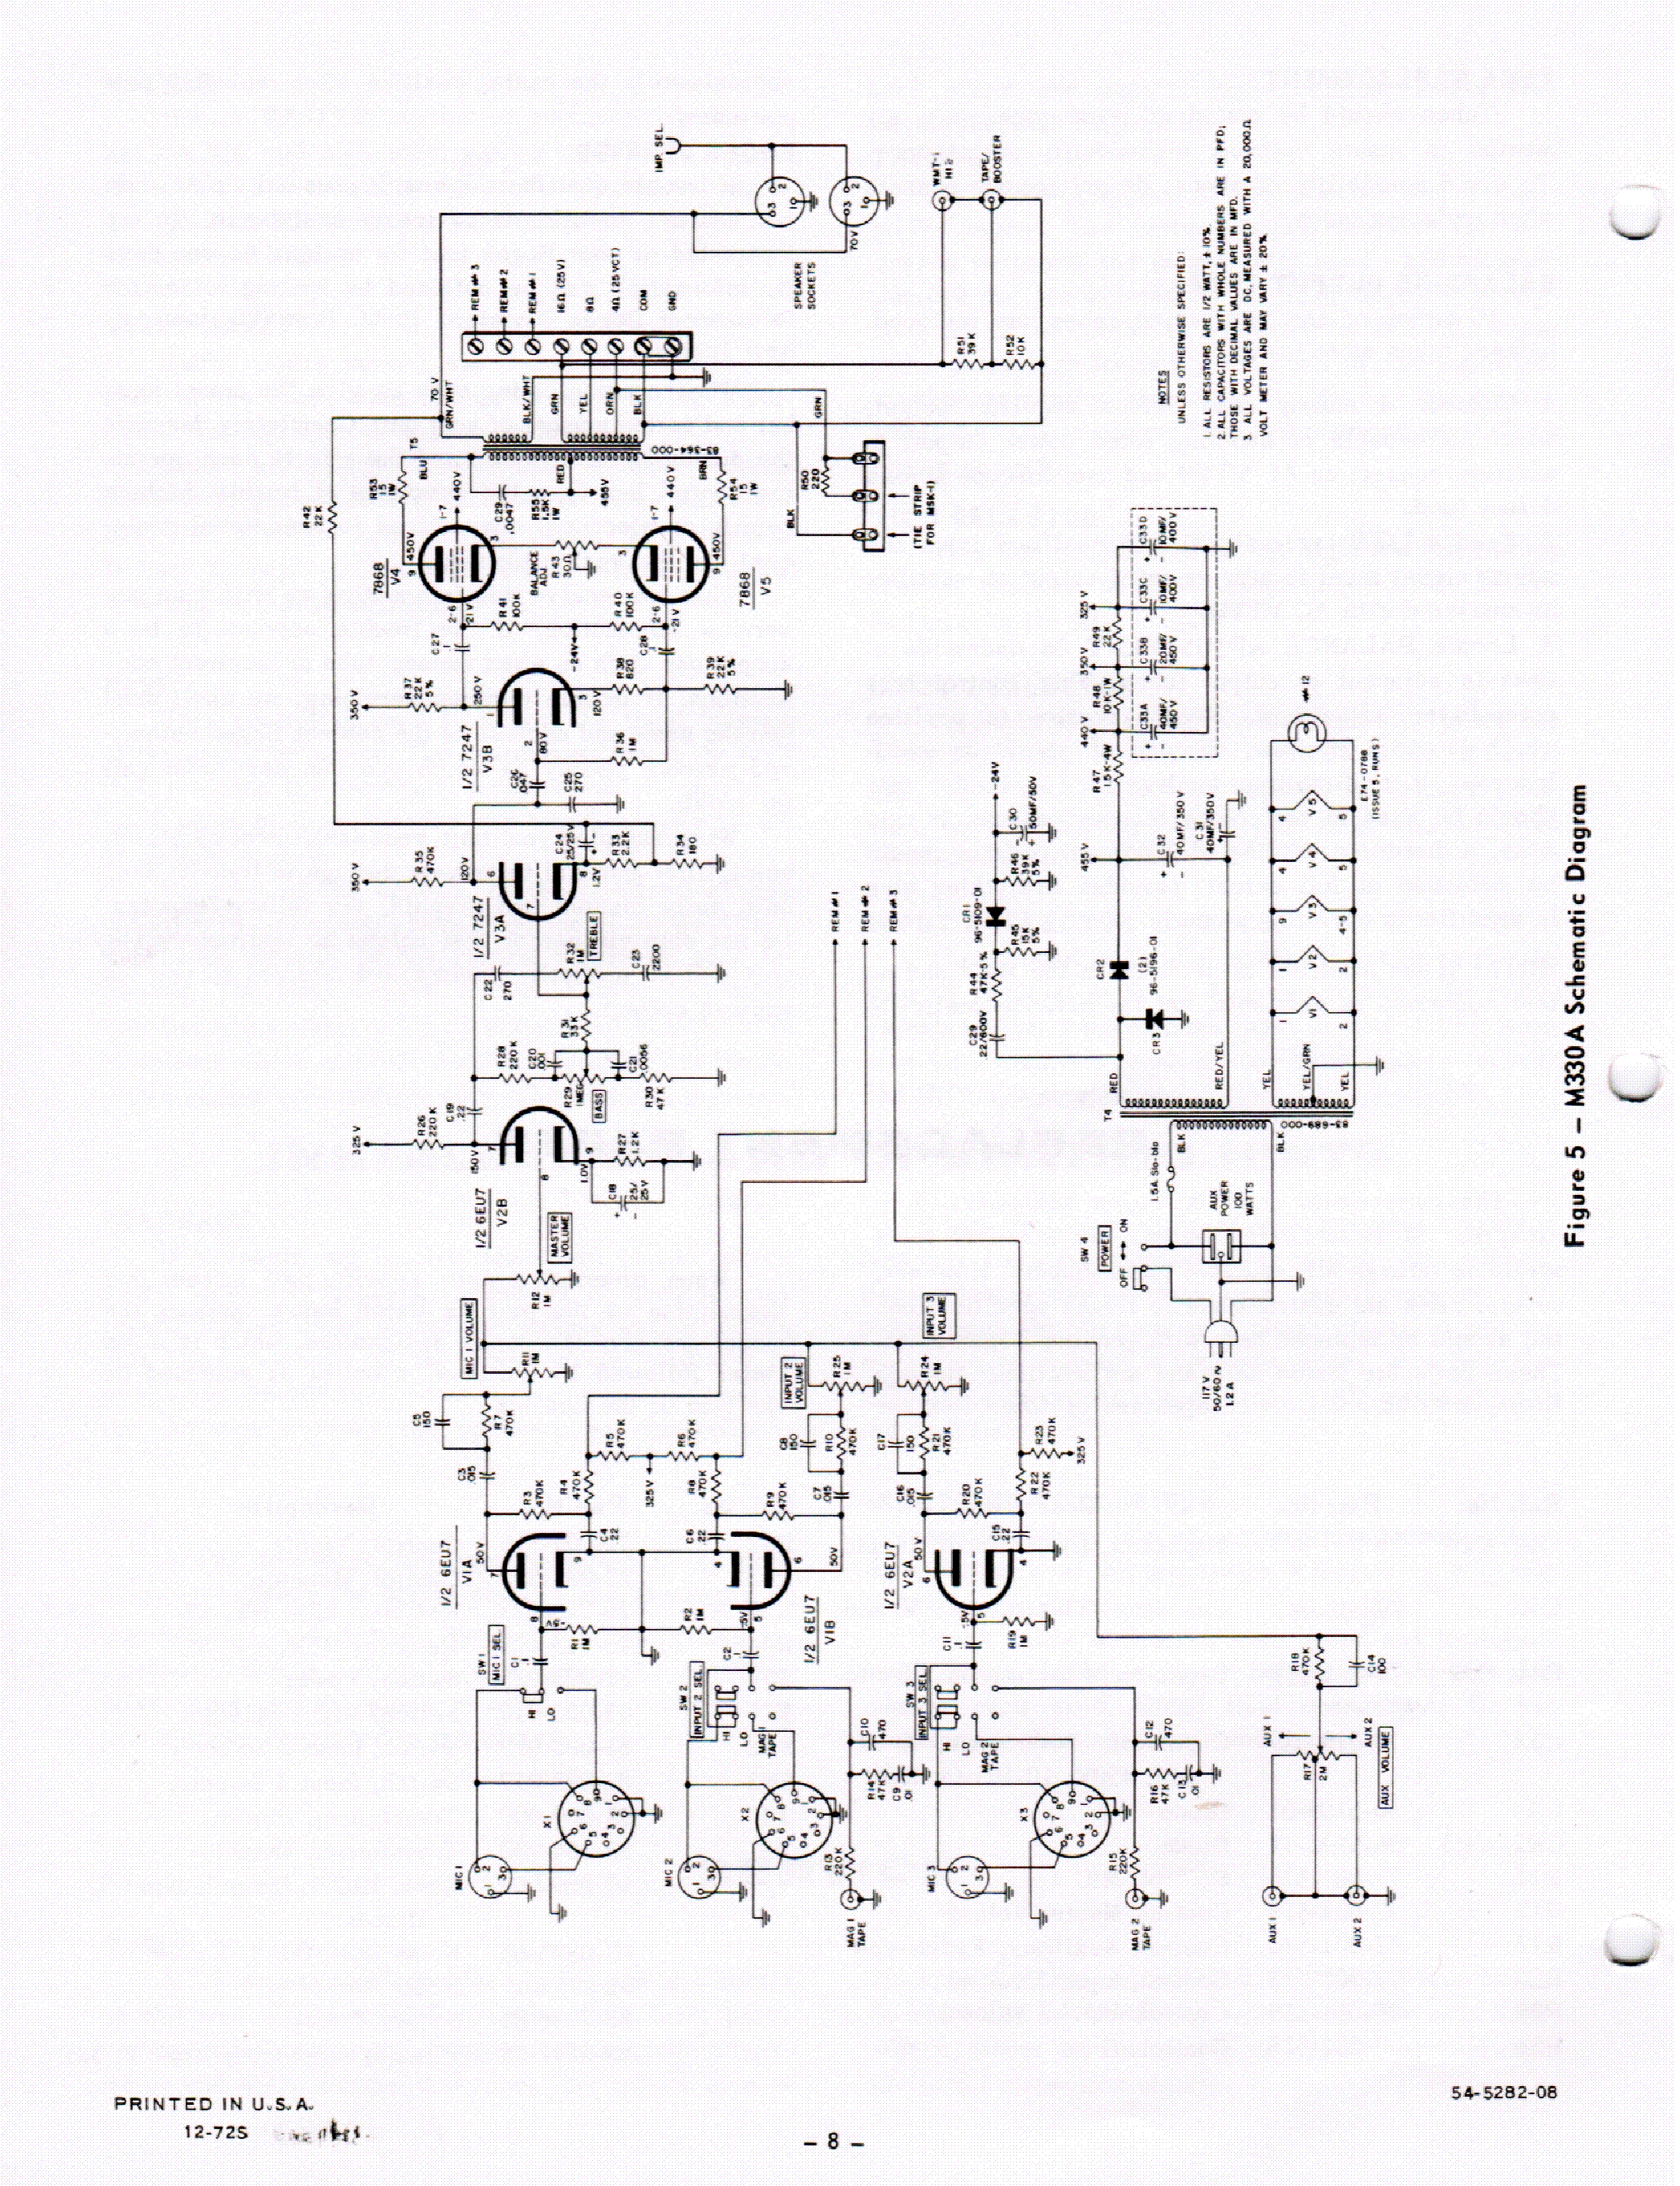 Bogen M330a Sch Service Manual Download Schematics